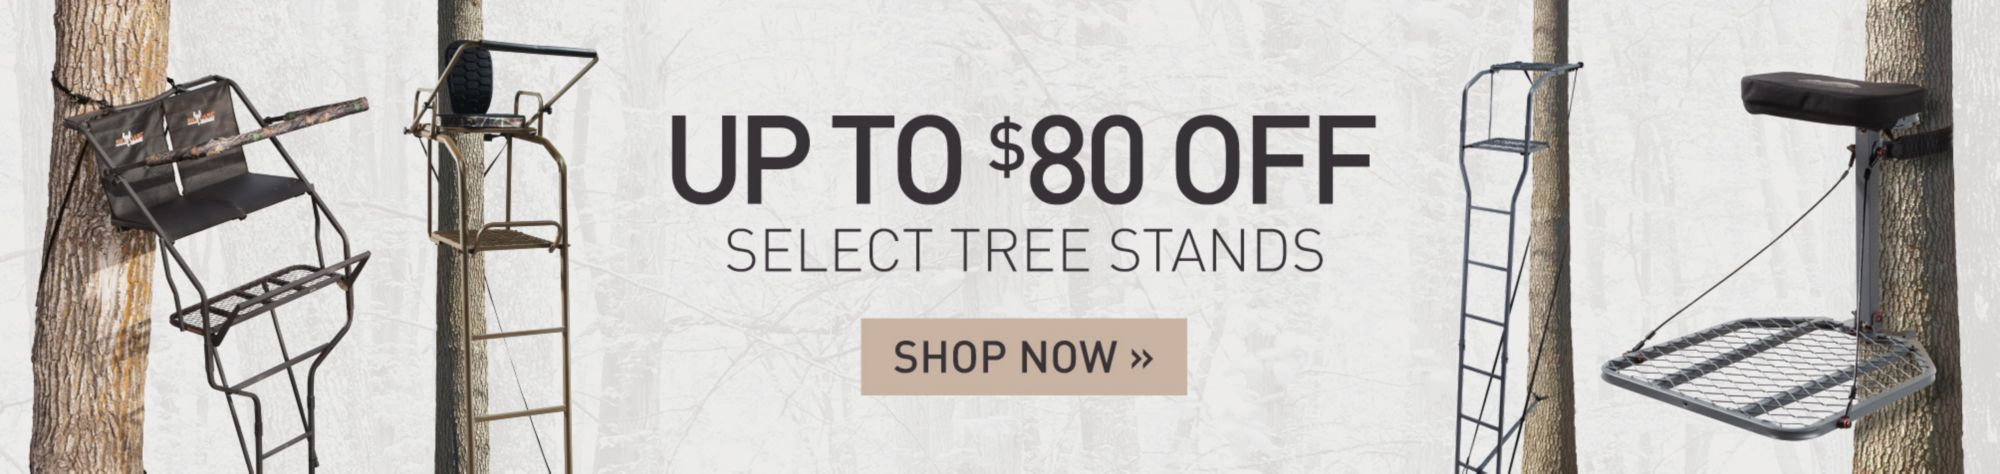 Save on Treestands